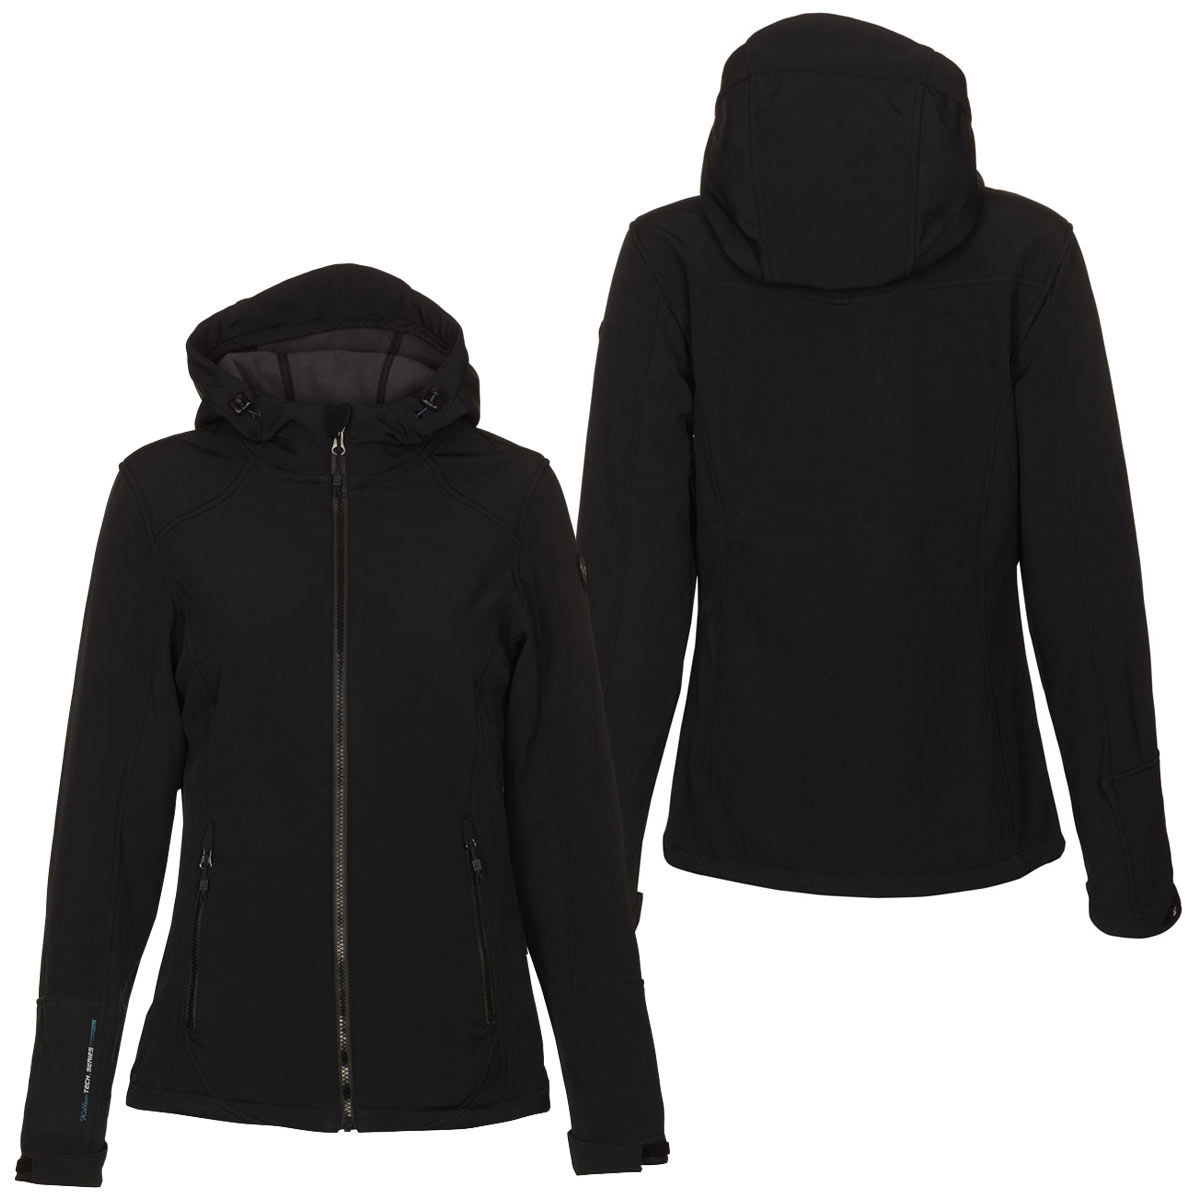 killtec lerika damen softshelljacke mit kapuze sport jacke. Black Bedroom Furniture Sets. Home Design Ideas